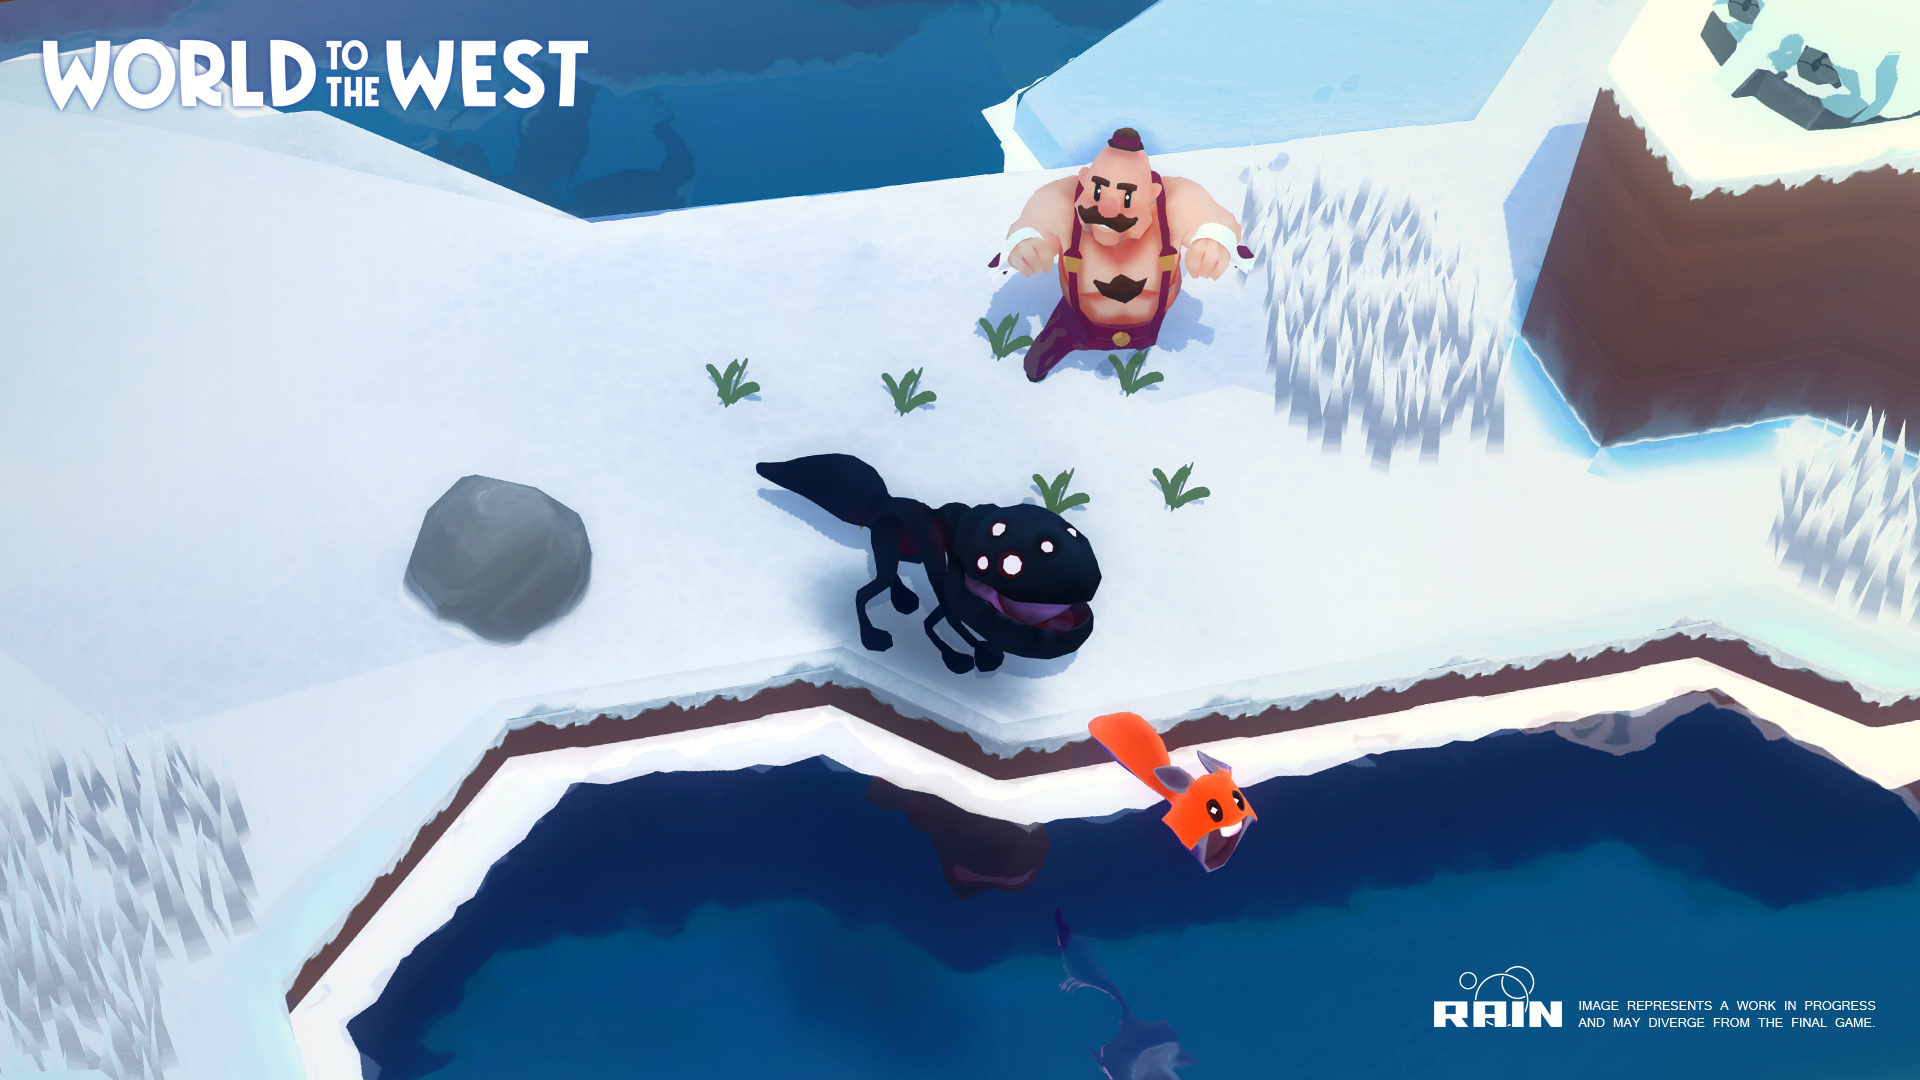 World to the West #5